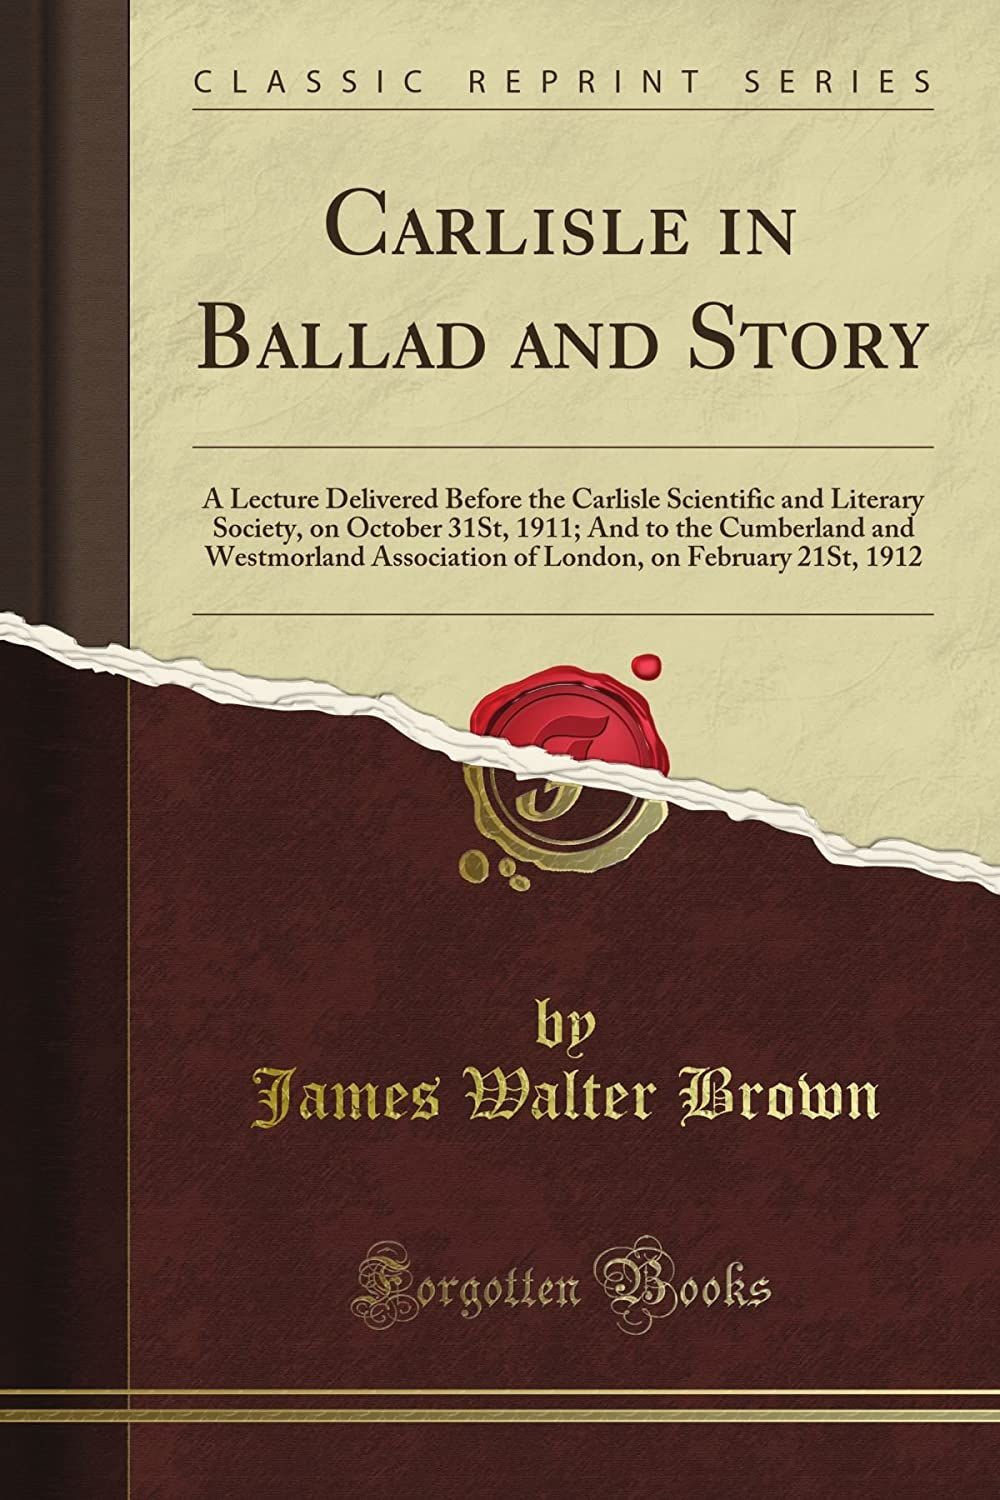 Carlisle in Ballad and Story: A Lecture Delivered Before the Carlisle Scientific and Literary Society, on October 31St, 1911; And to the Cumberland and Westmorland Association of London, on February 21St, 1912 (Classic Reprint)